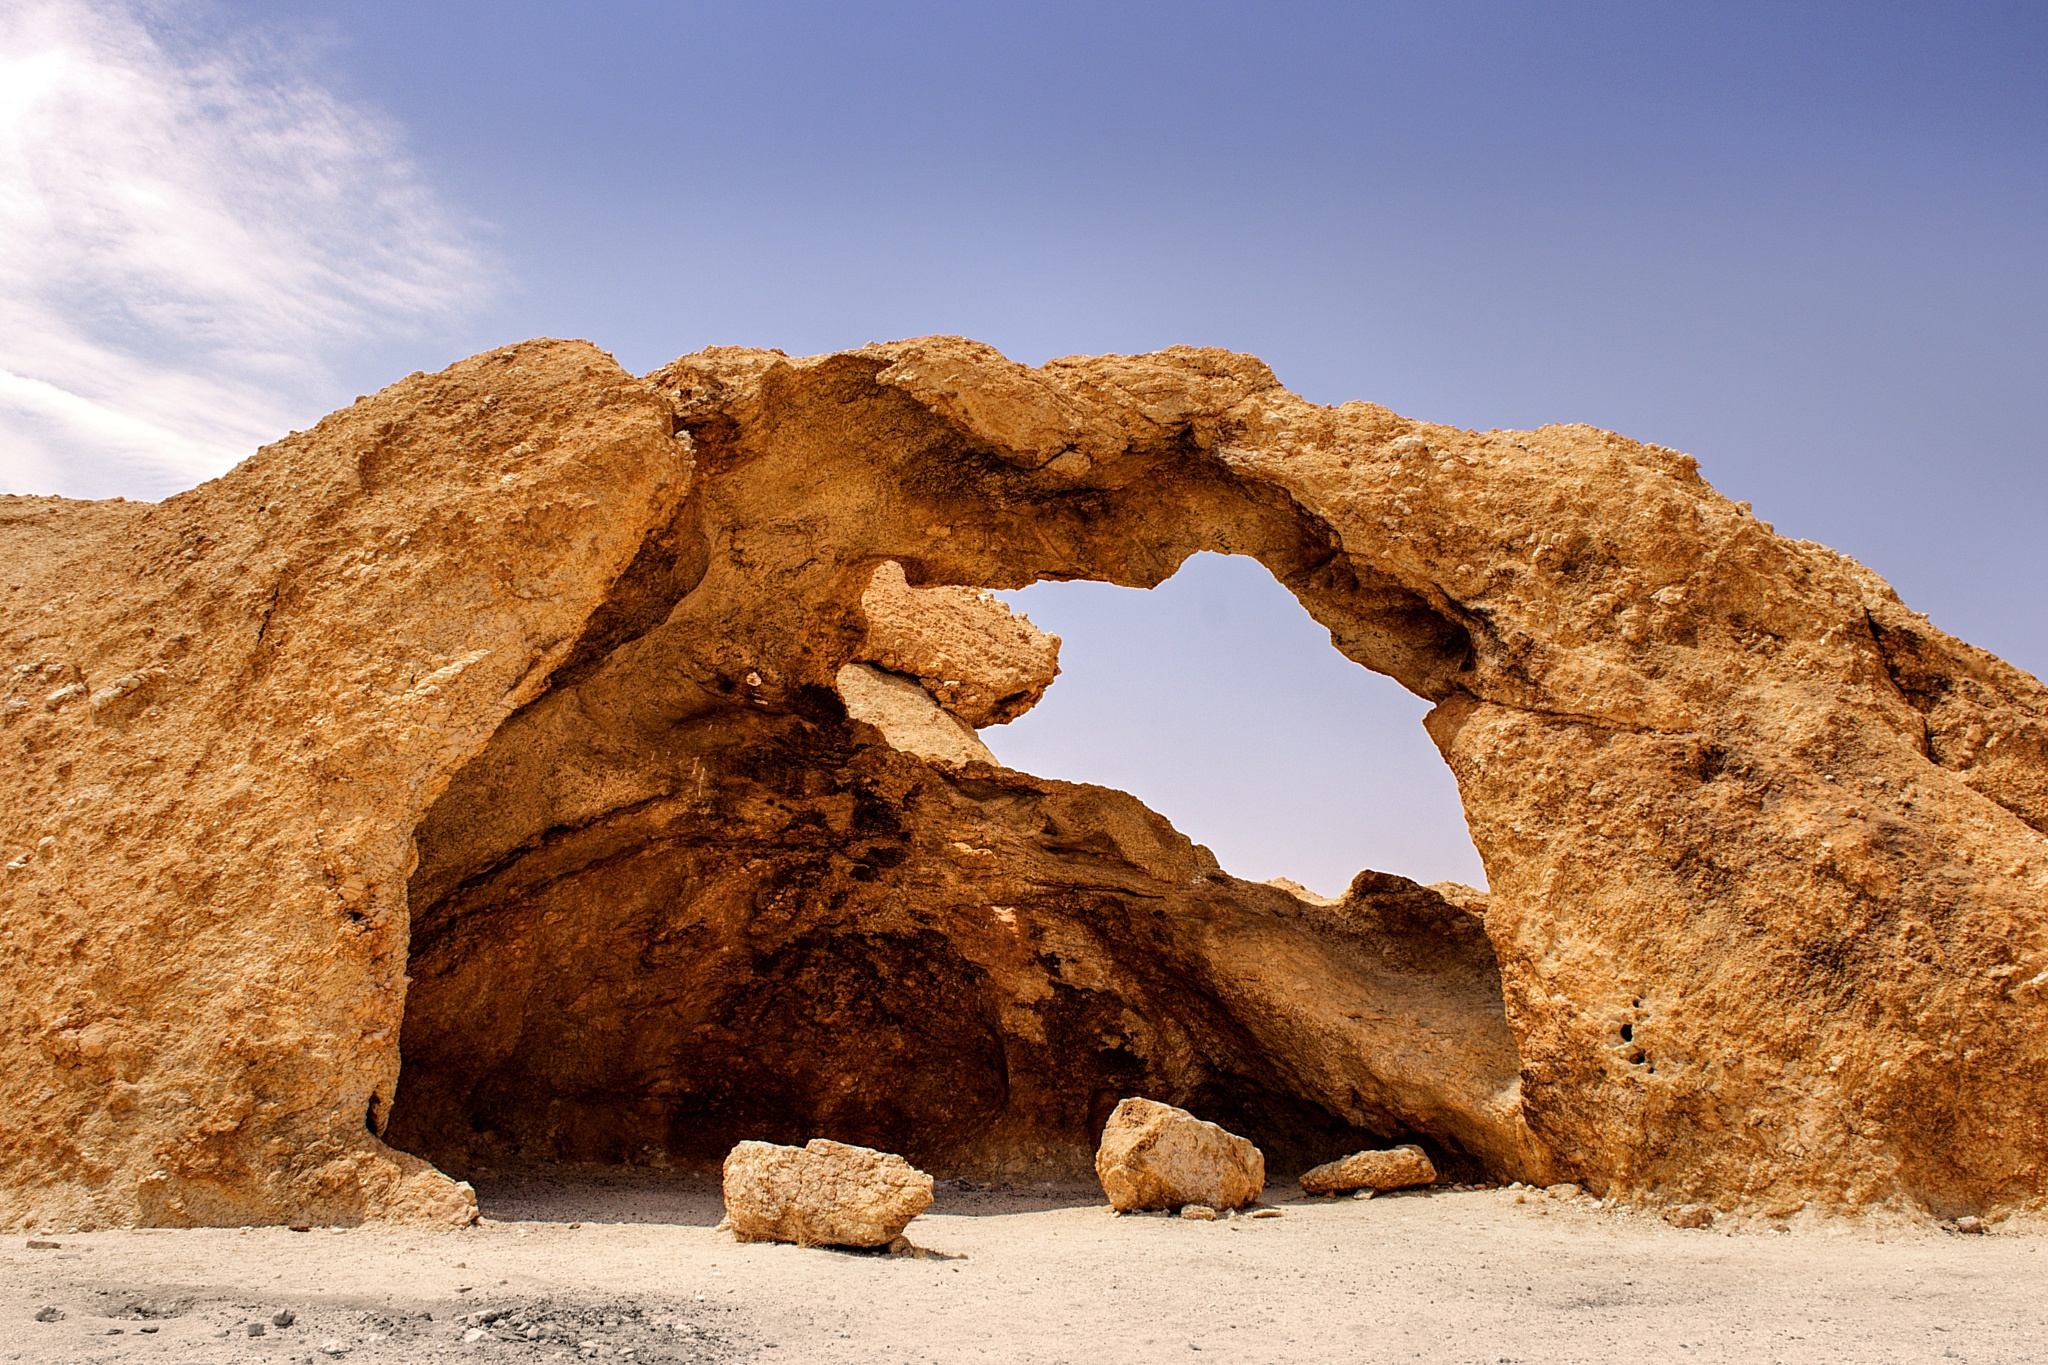 Rock Arch, Naukluft Nature Reserve, Namibia by Harrold Page